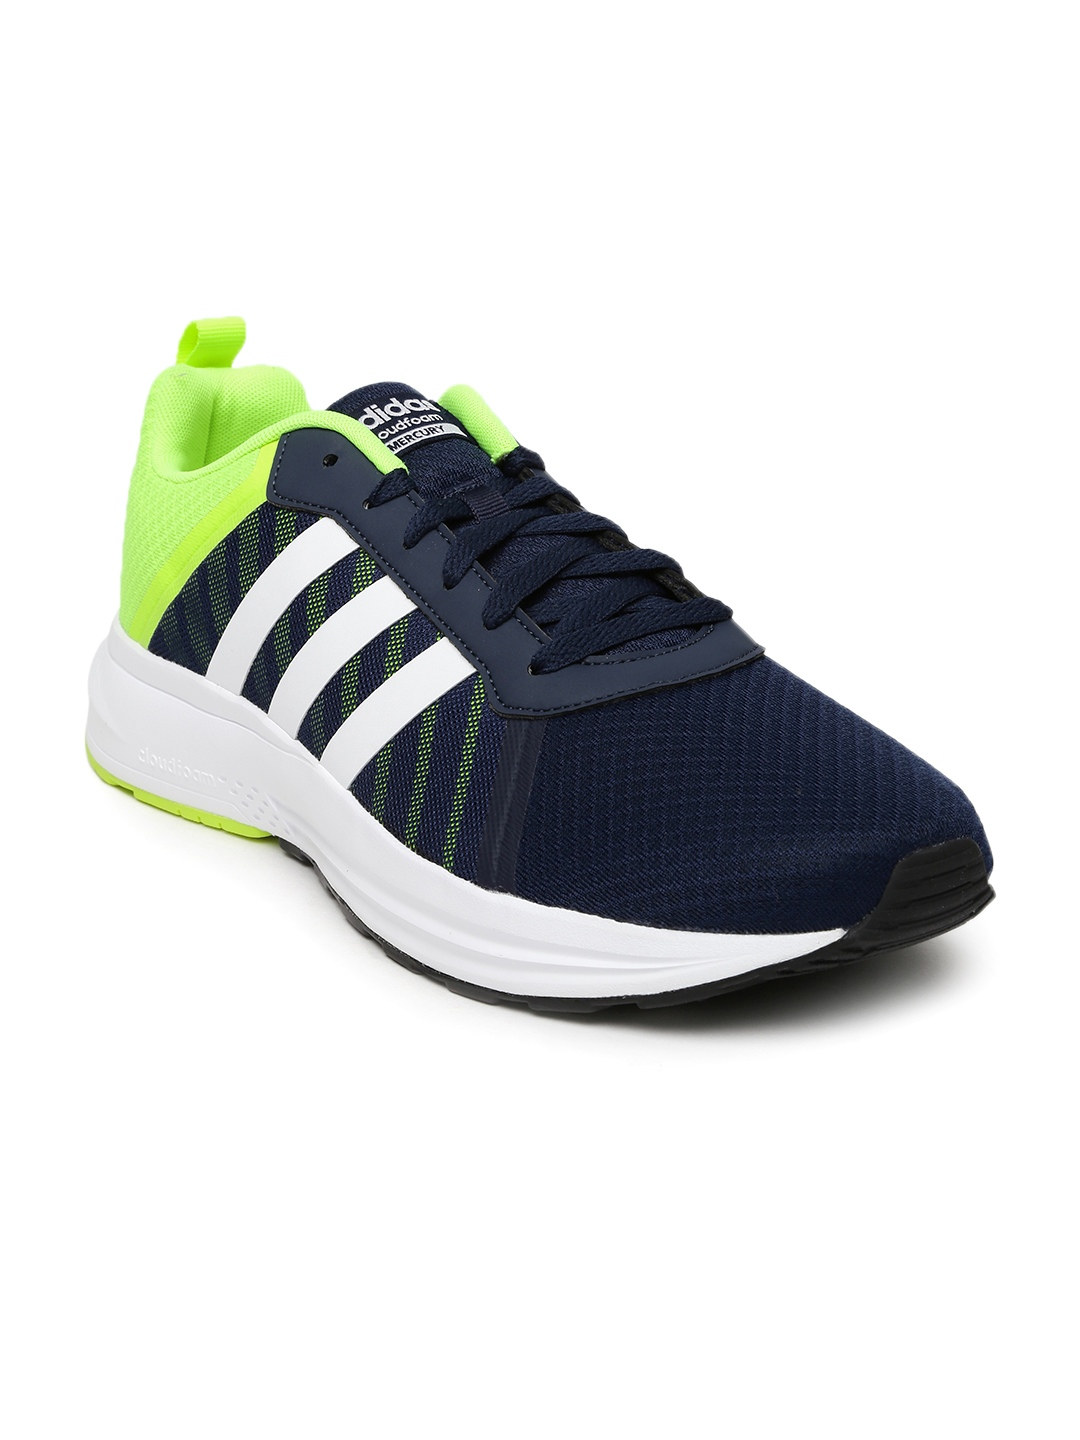 Adidas NEO Men Navy   Neon Green Cloudfoam Mercury Sneakers price Myntra.  Casual Shoes Deals at Myntra. Adidas NEO Men Navy   Neon Green Cloudfoam  Mercury ... 91bdcf010fc49